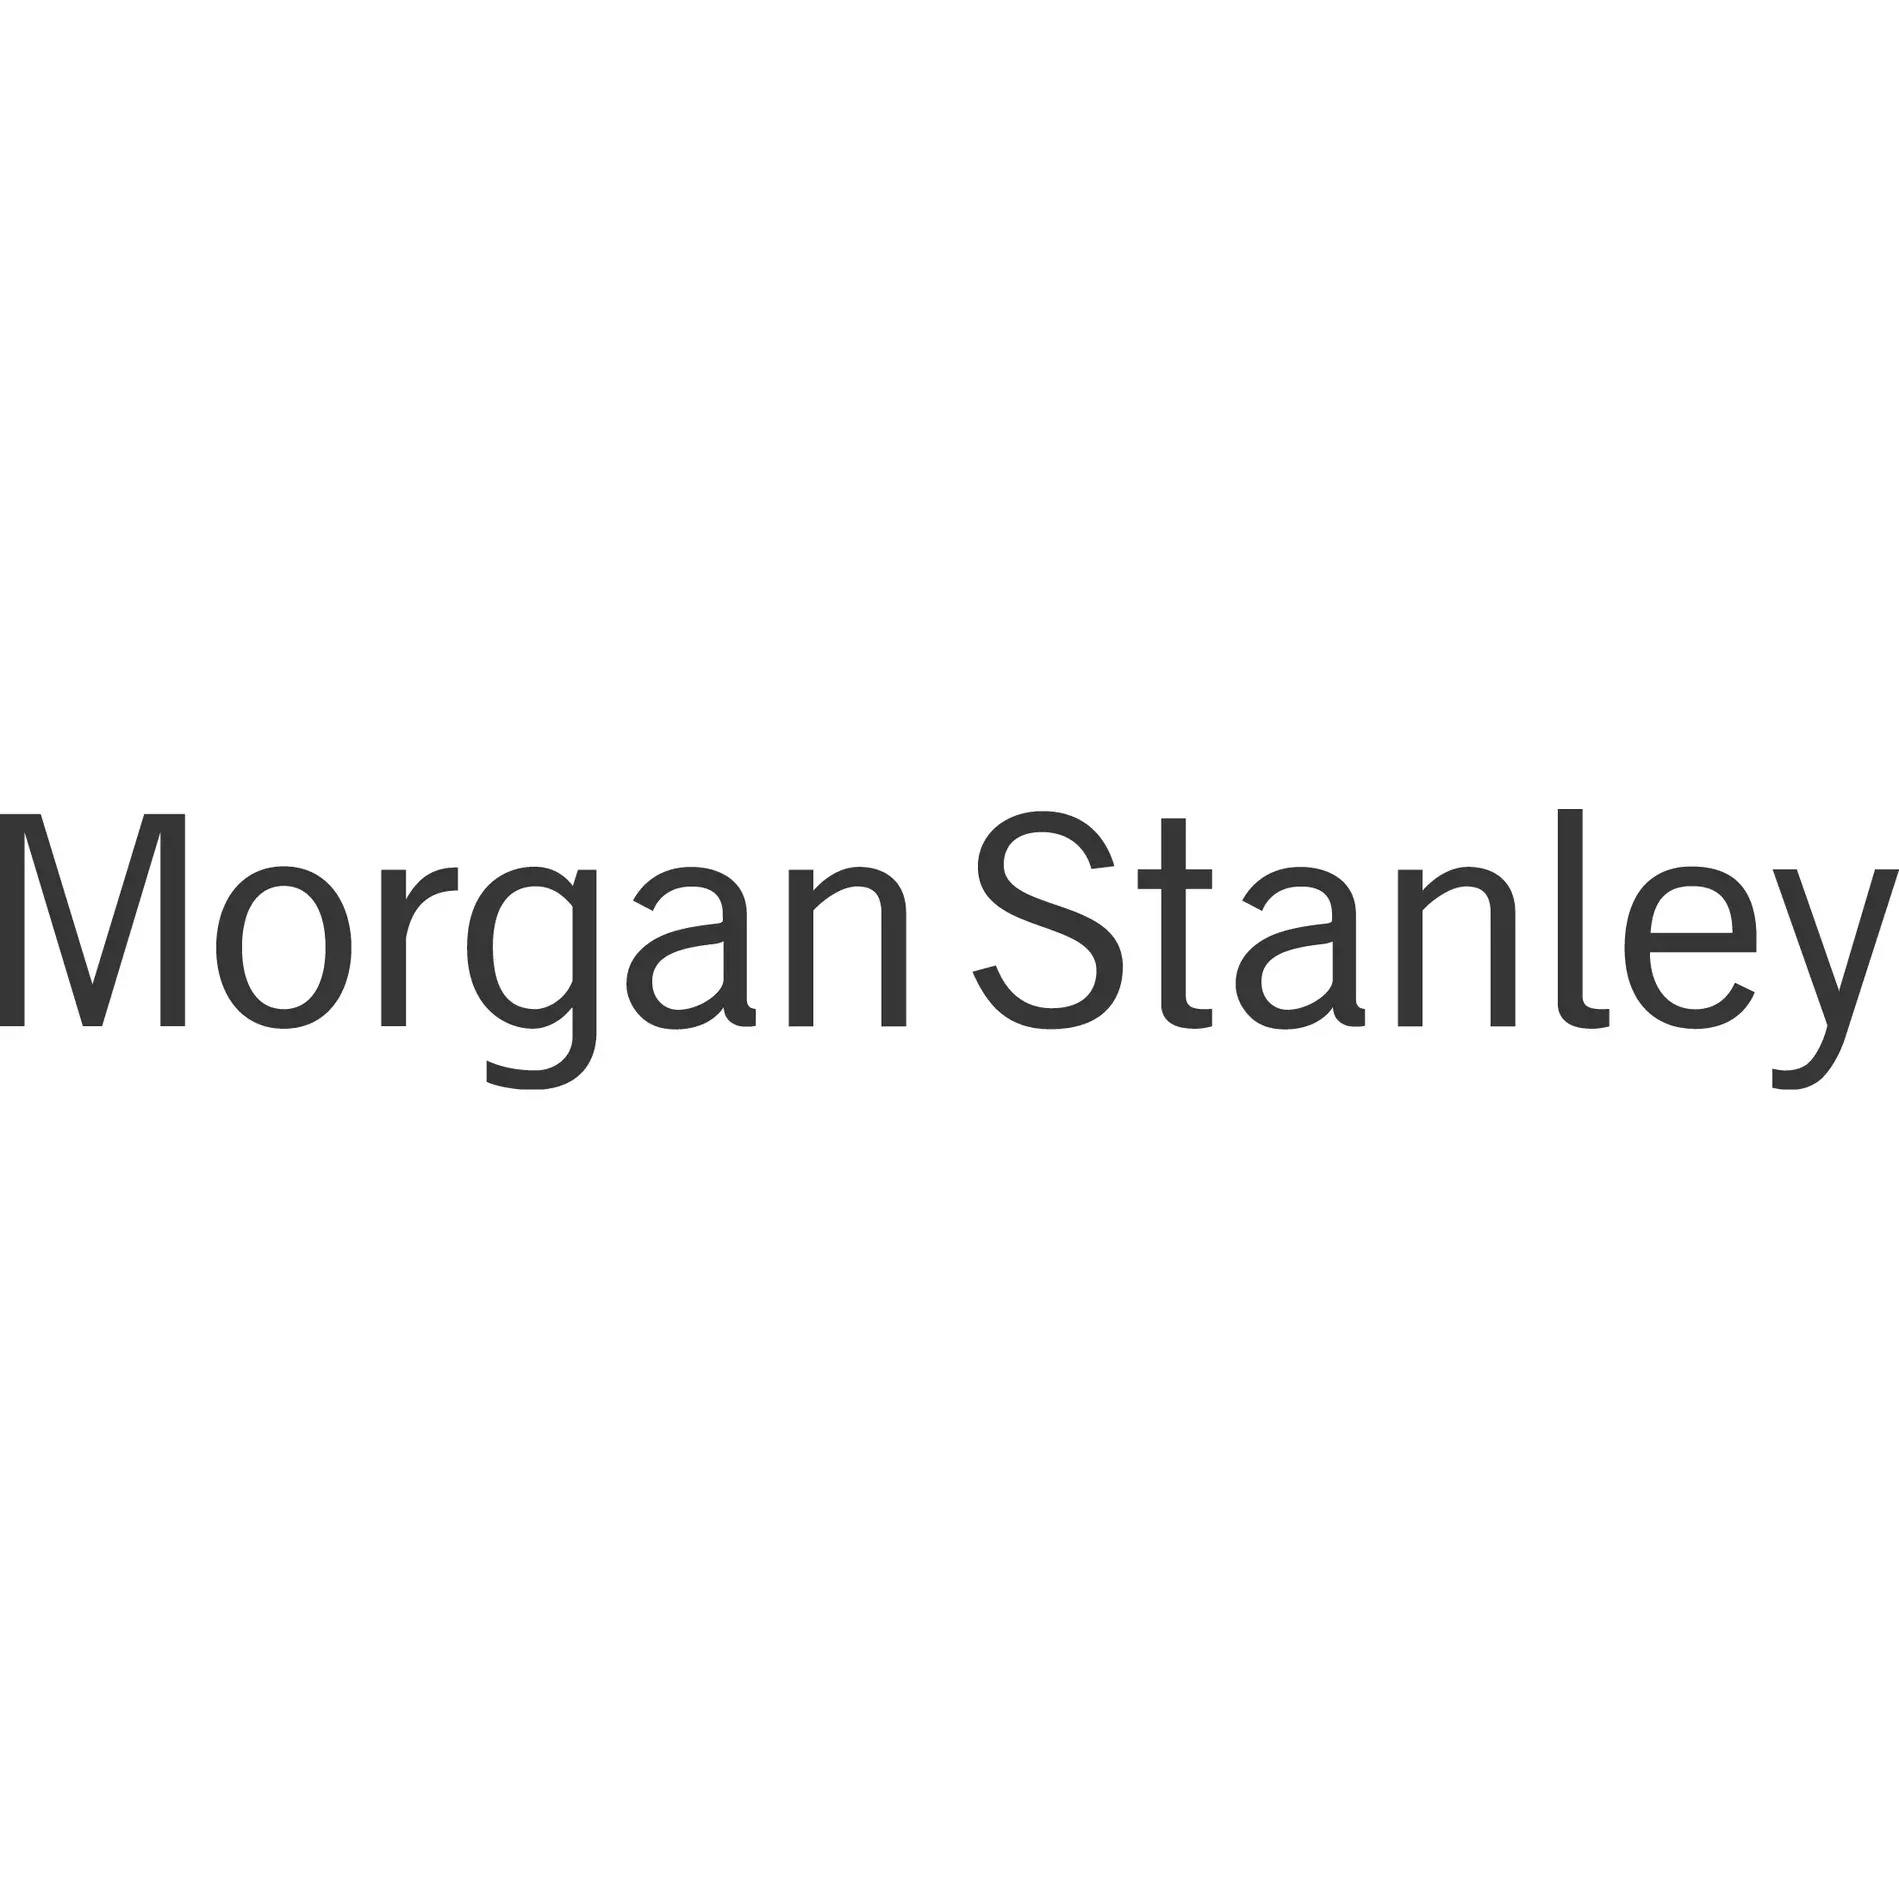 The Kartheiser Group - Morgan Stanley | Financial Advisor in Chicago,Illinois